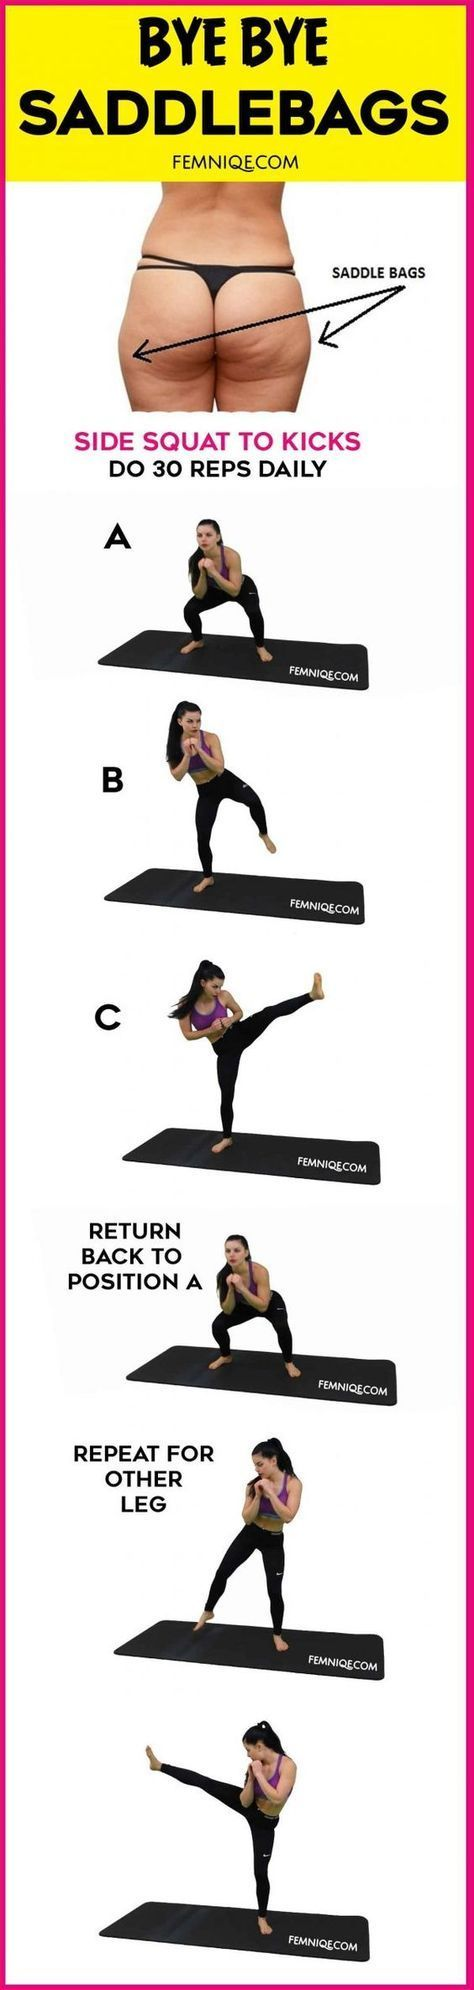 The Best Step By Step Exercises For Fitness, Weight Loss, And Healthy Living. Includes Yoga Poses, Great Stretches, Fat Burners, Full Body Workouts, And Quick Work Outs To Do During The Day. Great Step By Step Exercises For Beginners, Exercise Guides And How To Exercise For Young And Old. Treat This As An Exercise Cheat Sheet For Fat Burning Cardio Workouts For A Flat Belly, A Great Butt And Toned Arms And Thighs. Pictures And Videos Of Exercises For At Home And The Gym.